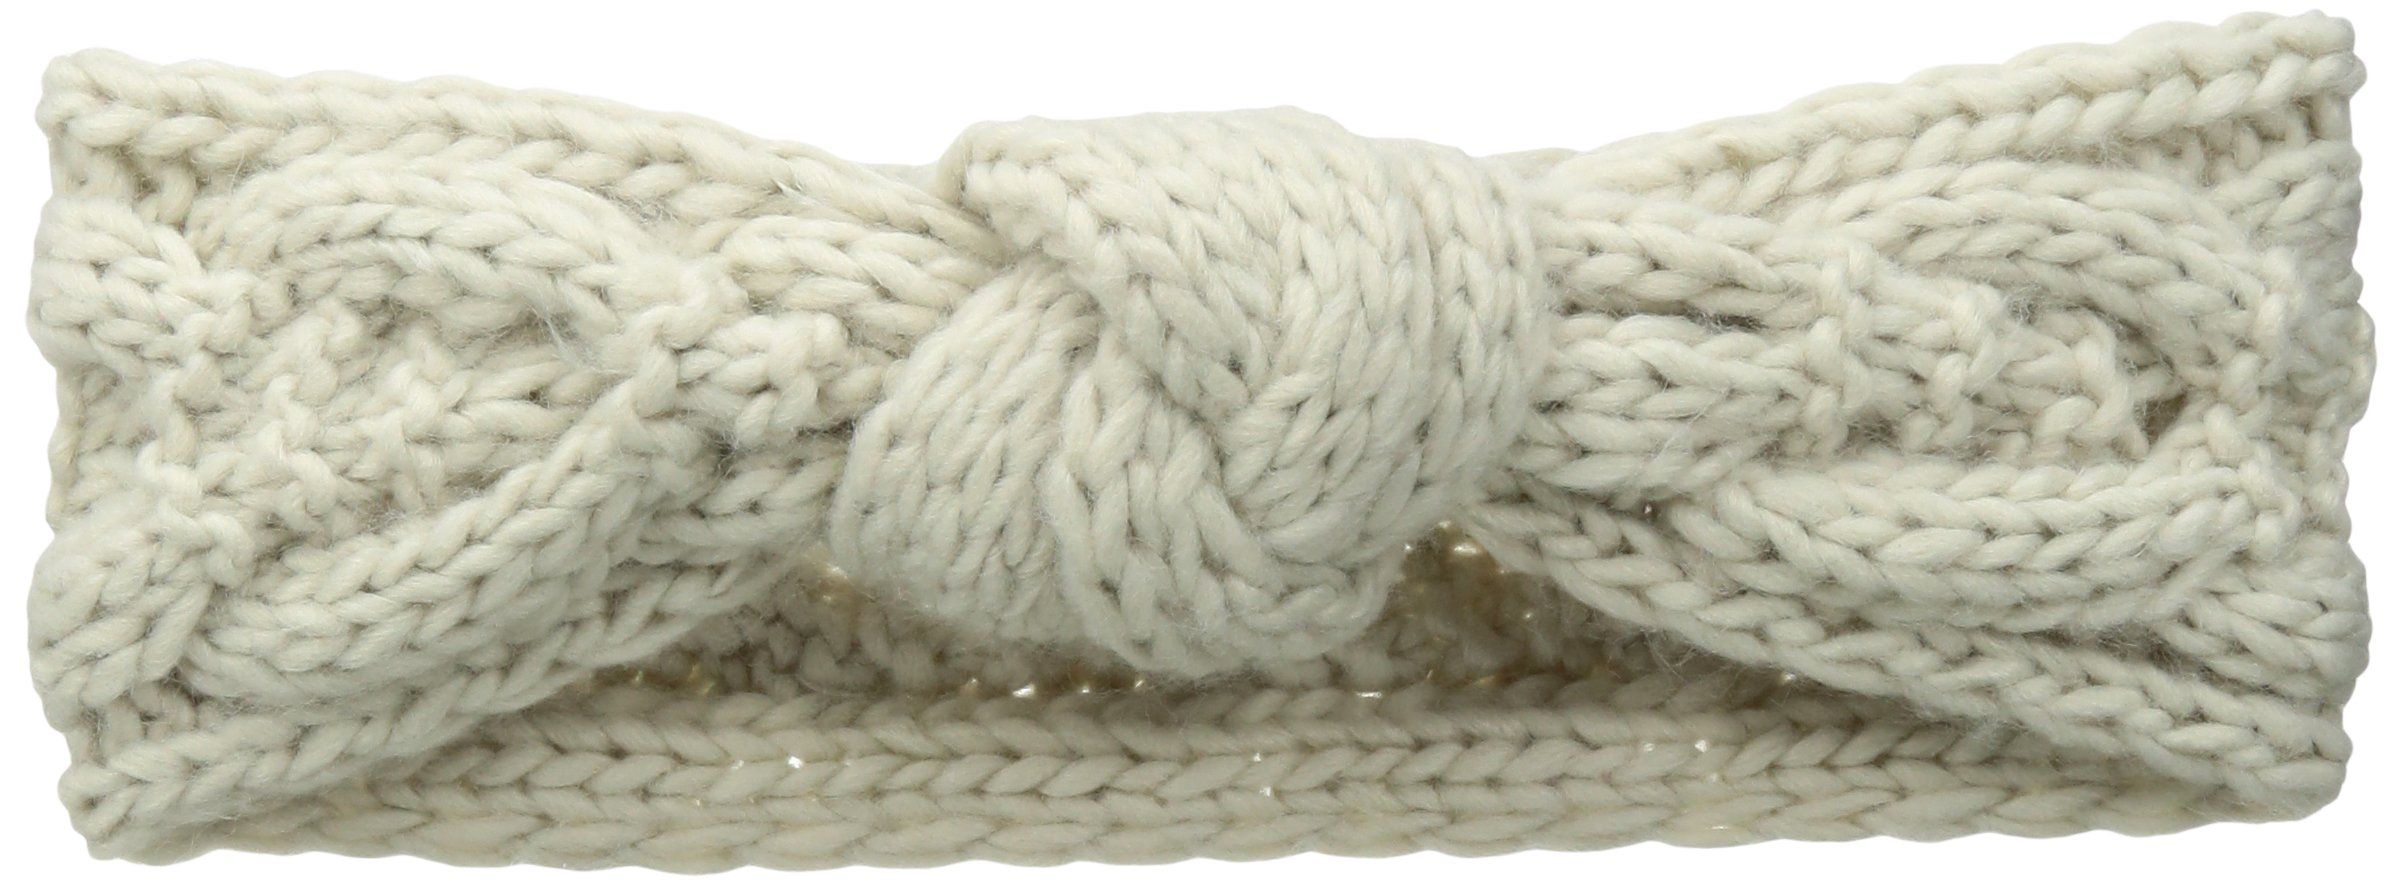 San Diego Hat Company Women's Cable Knit Knot Headband, Cream, One Size